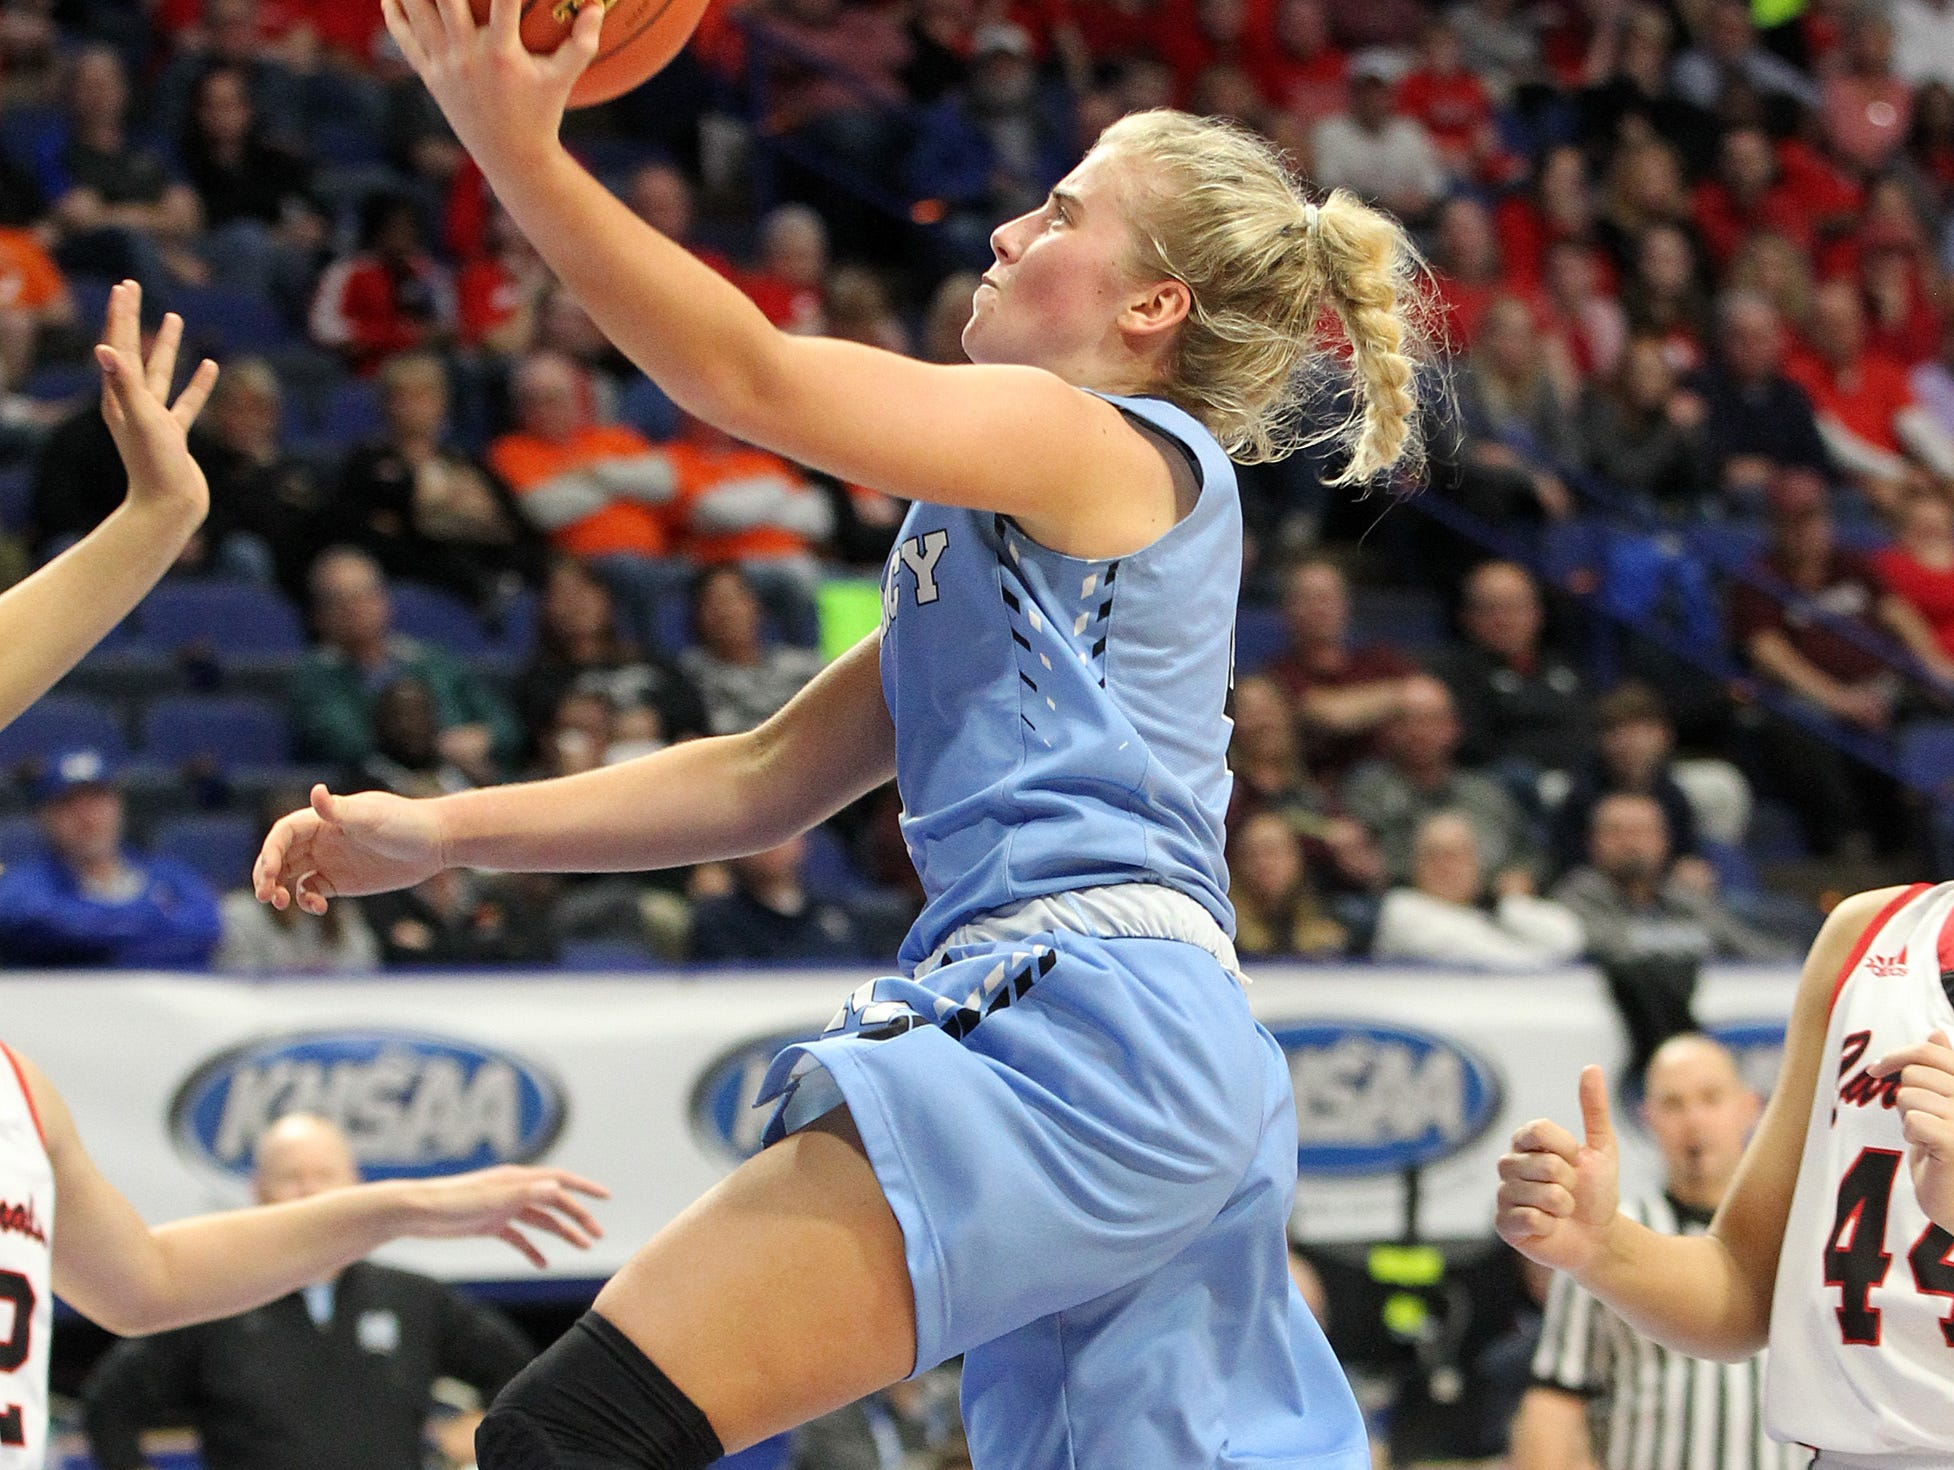 Mercy's Hope Sivori shoots between George Rogers Clark defenders in their opening round game at the KHSAA Girl's Sweet 16, Wednesday, March 13. George Rogers Clark won 65-64.